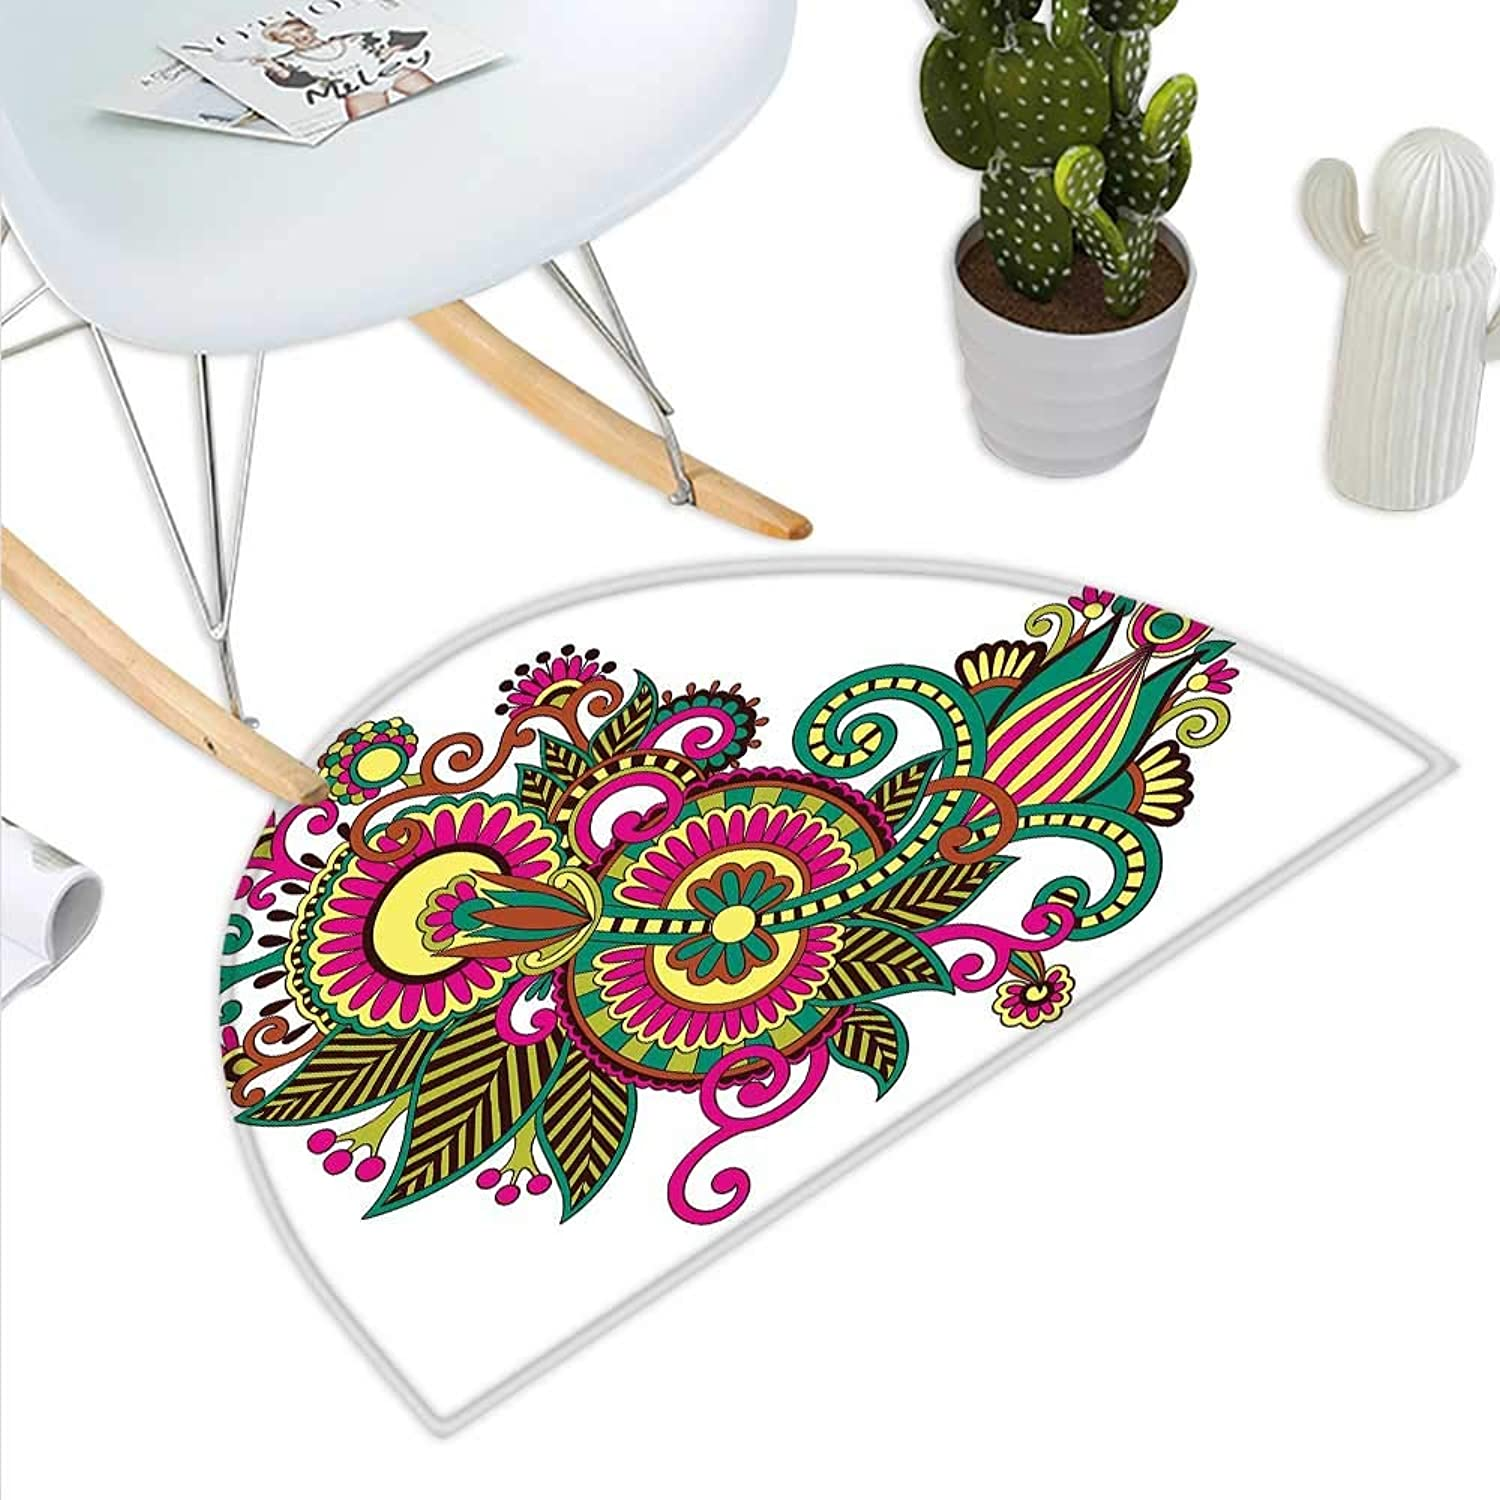 Henna Semicircle Doormat Traditional Ukrainian Design Hand Drawn Floral Pattern Multicolord European Design Halfmoon doormats H 39.3  xD 59  Multicolor